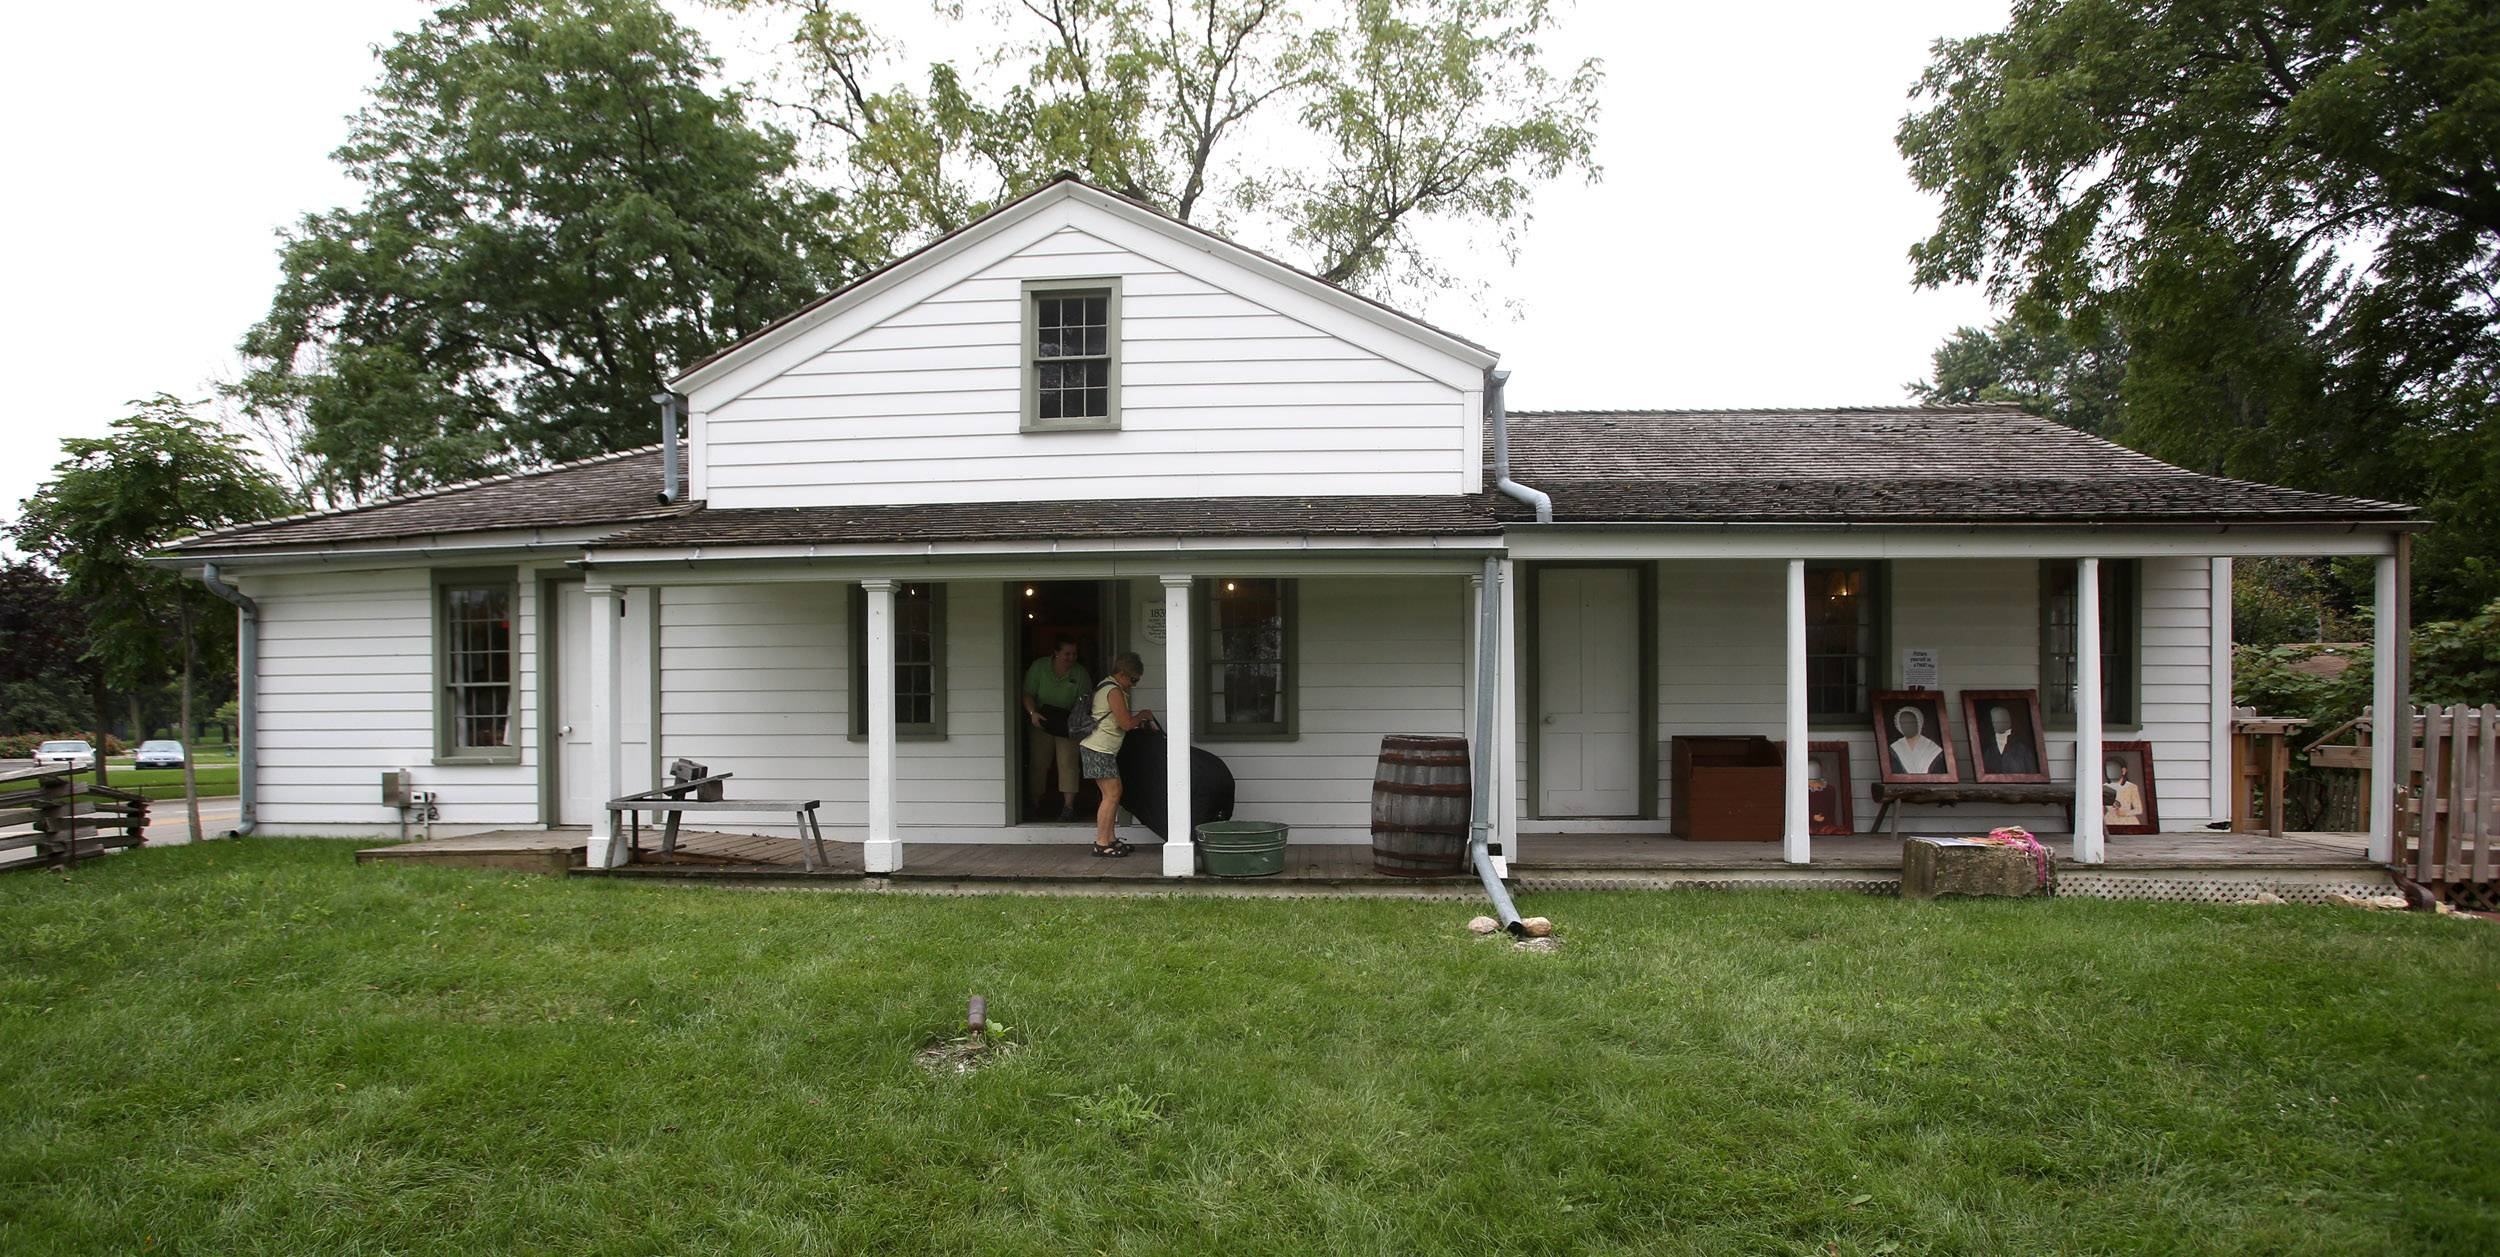 The Lombard Historical Society's three-day Peckapalooza celebration, honoring the completion of the Peck Homestead's construction, continues through the weekend.